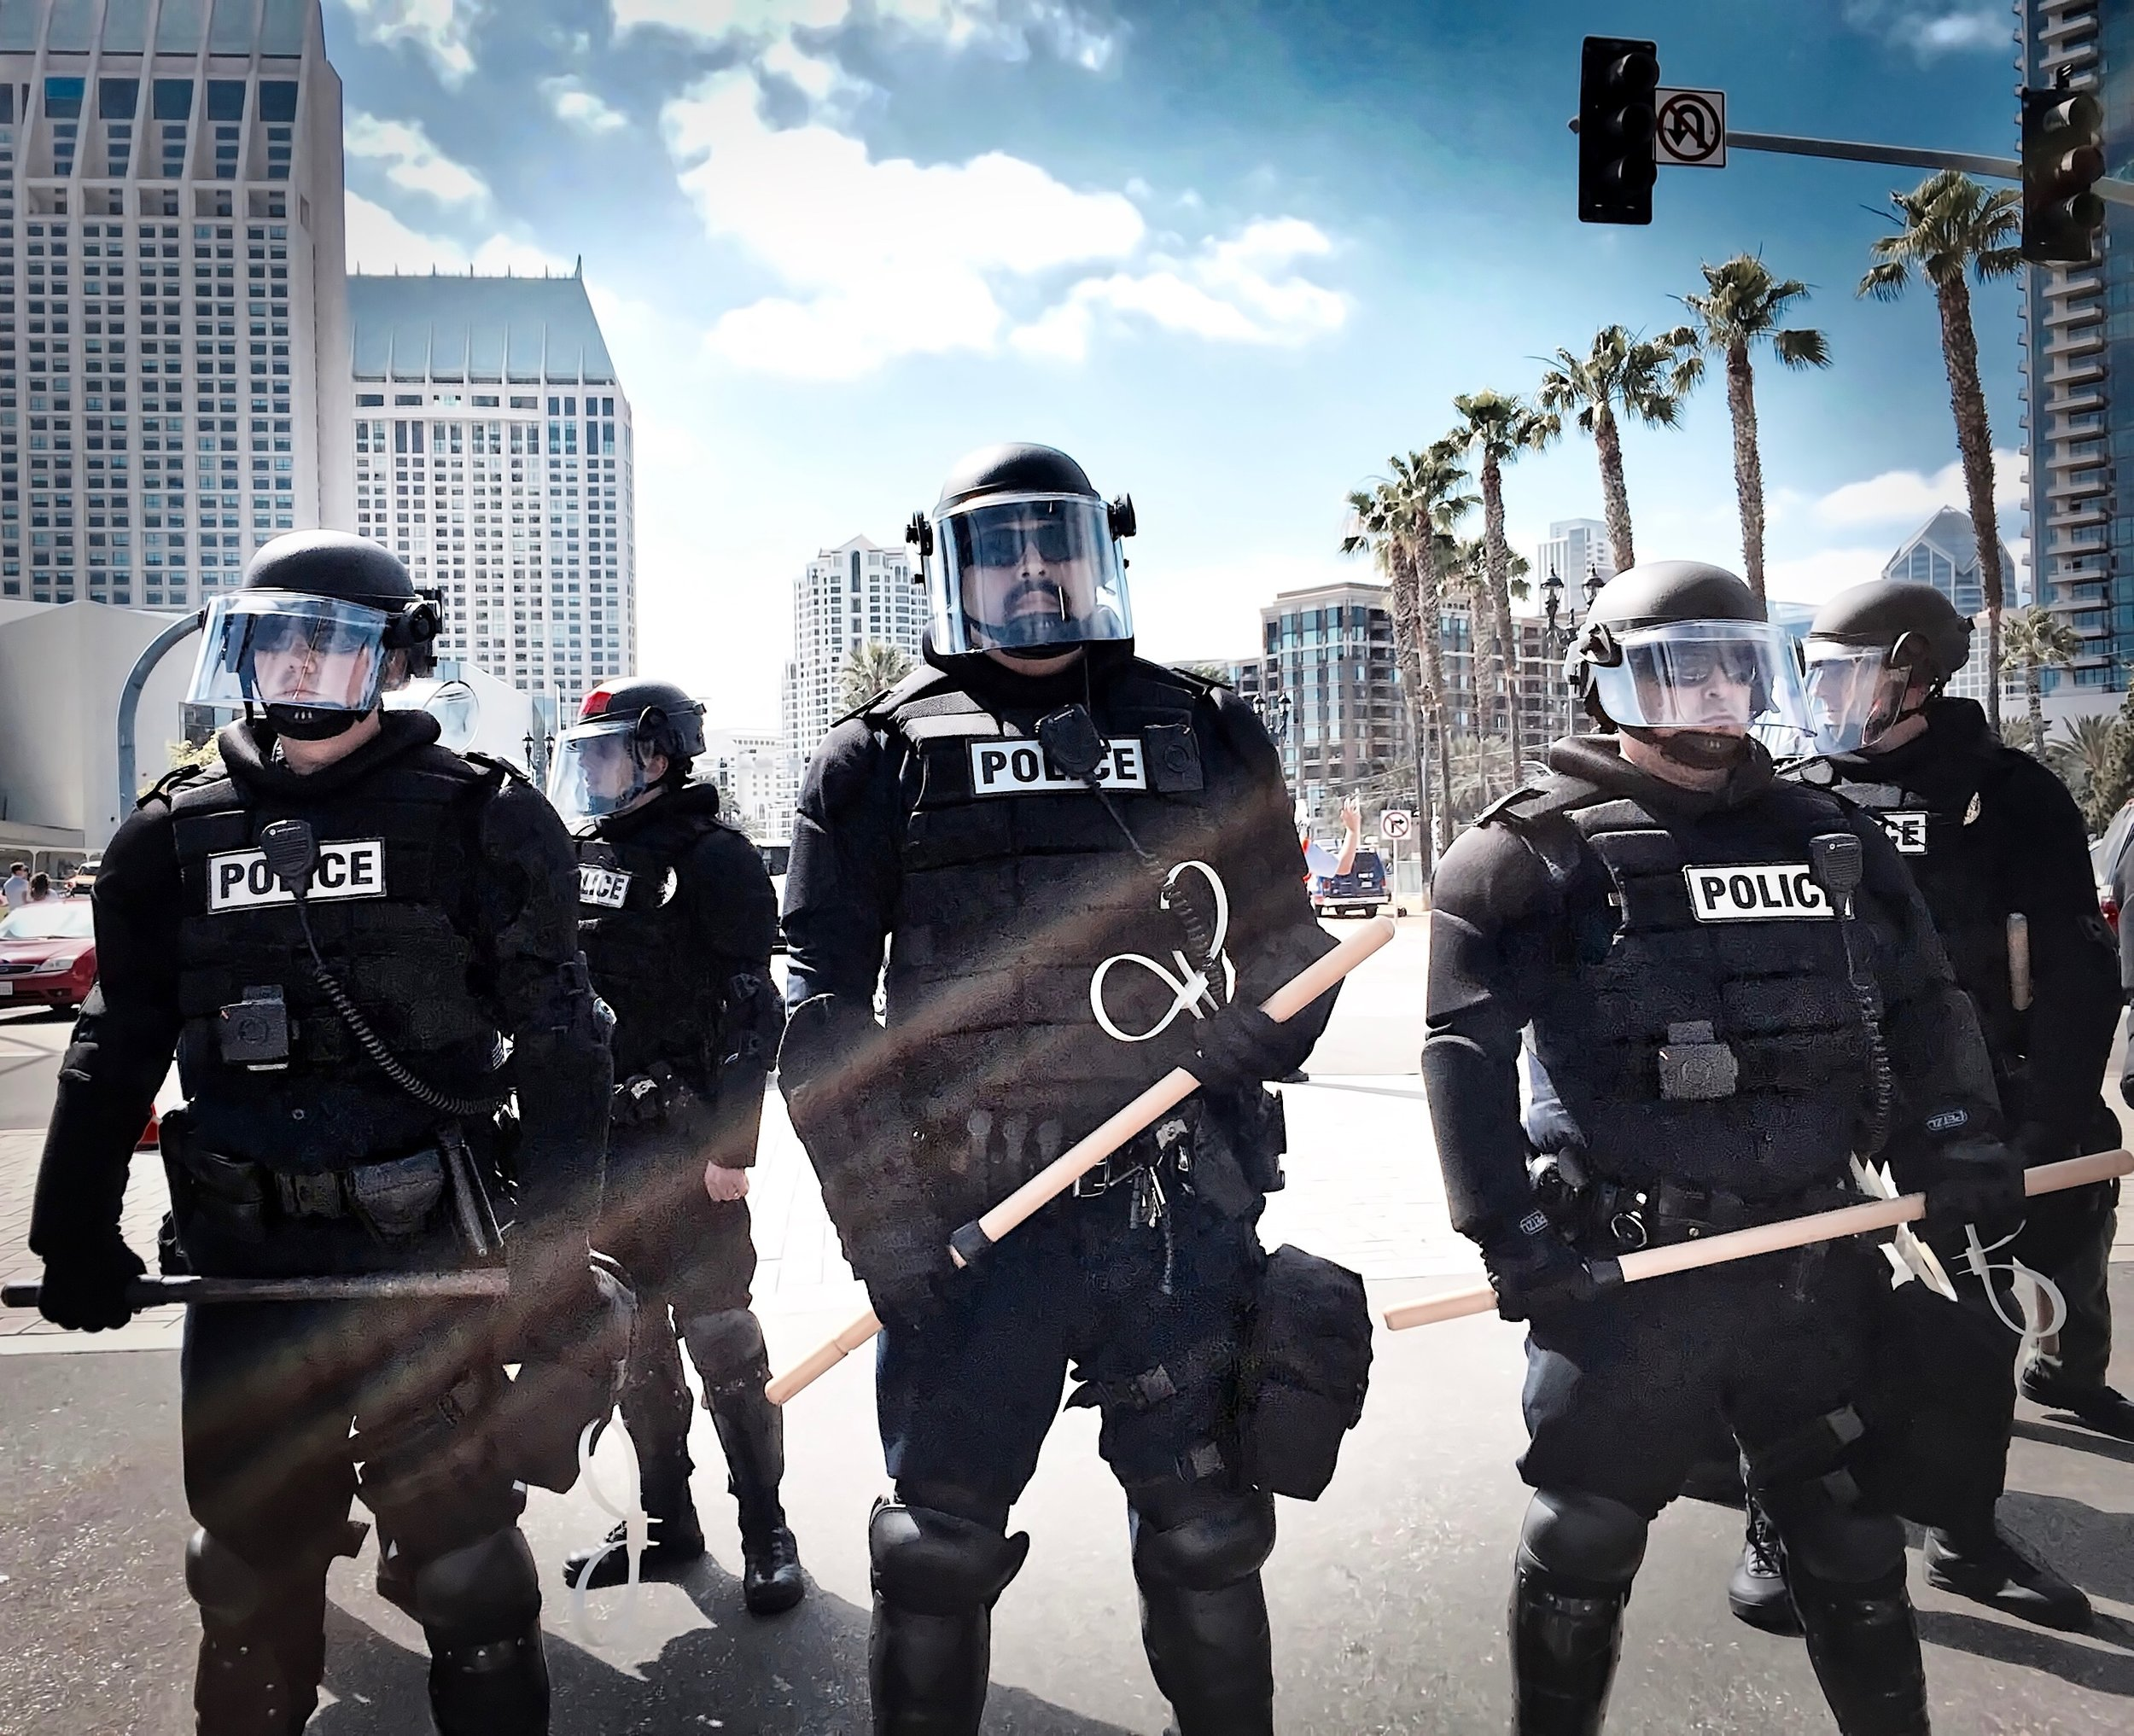 police-in-riot-geer-downtown-today-at-the-donald-trump-rally_t20_7JGJOv.jpg